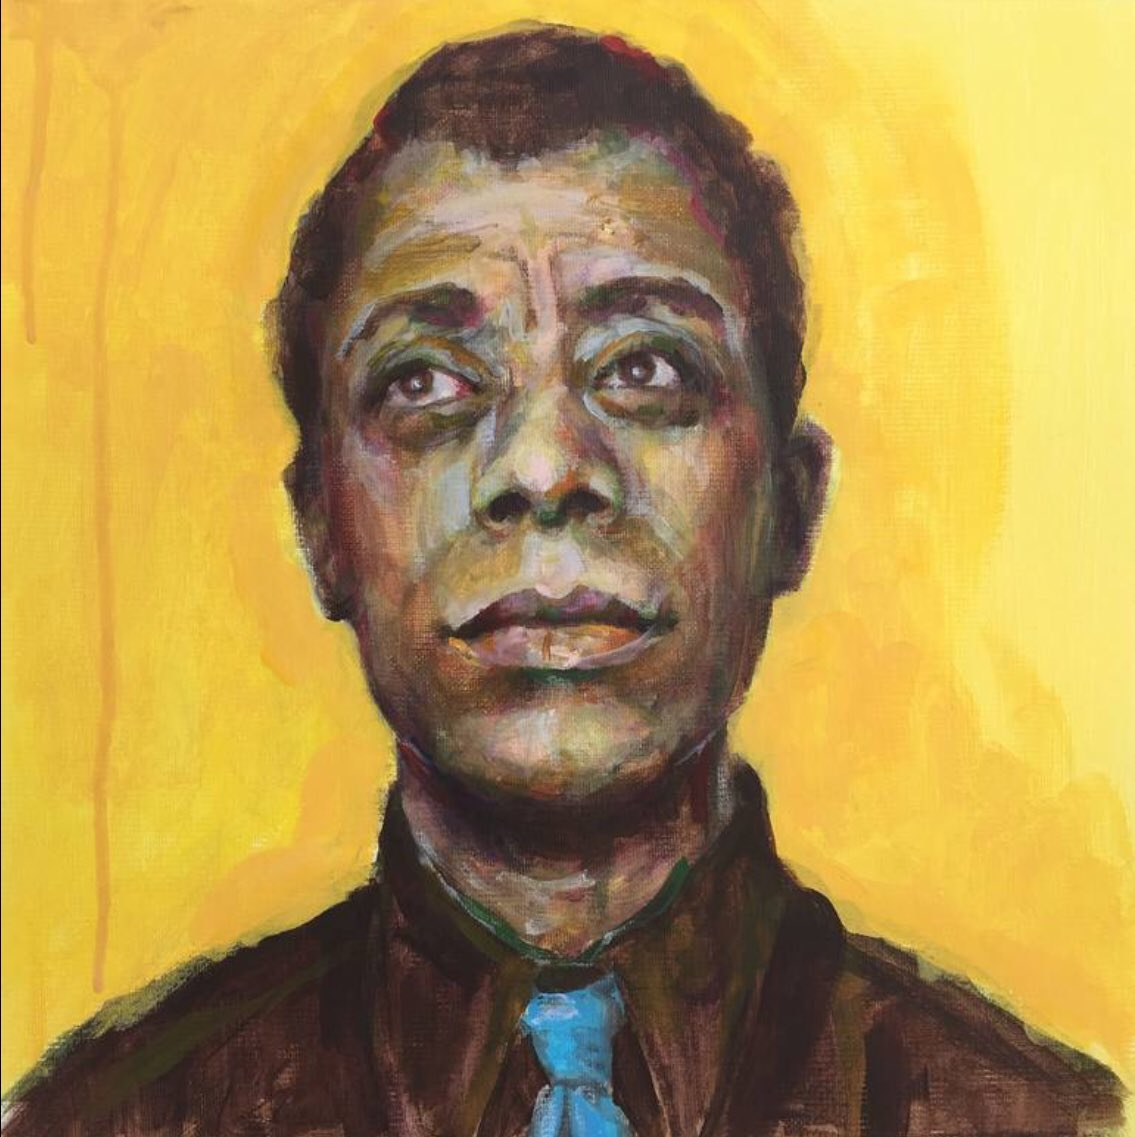 Happy Birthday to the late great #JamesBaldwin who would've be 96 years old today. The Op-Ed I wrote in The Hill was inspired by his tell it like it is style: thehill.com/changing-ameri…